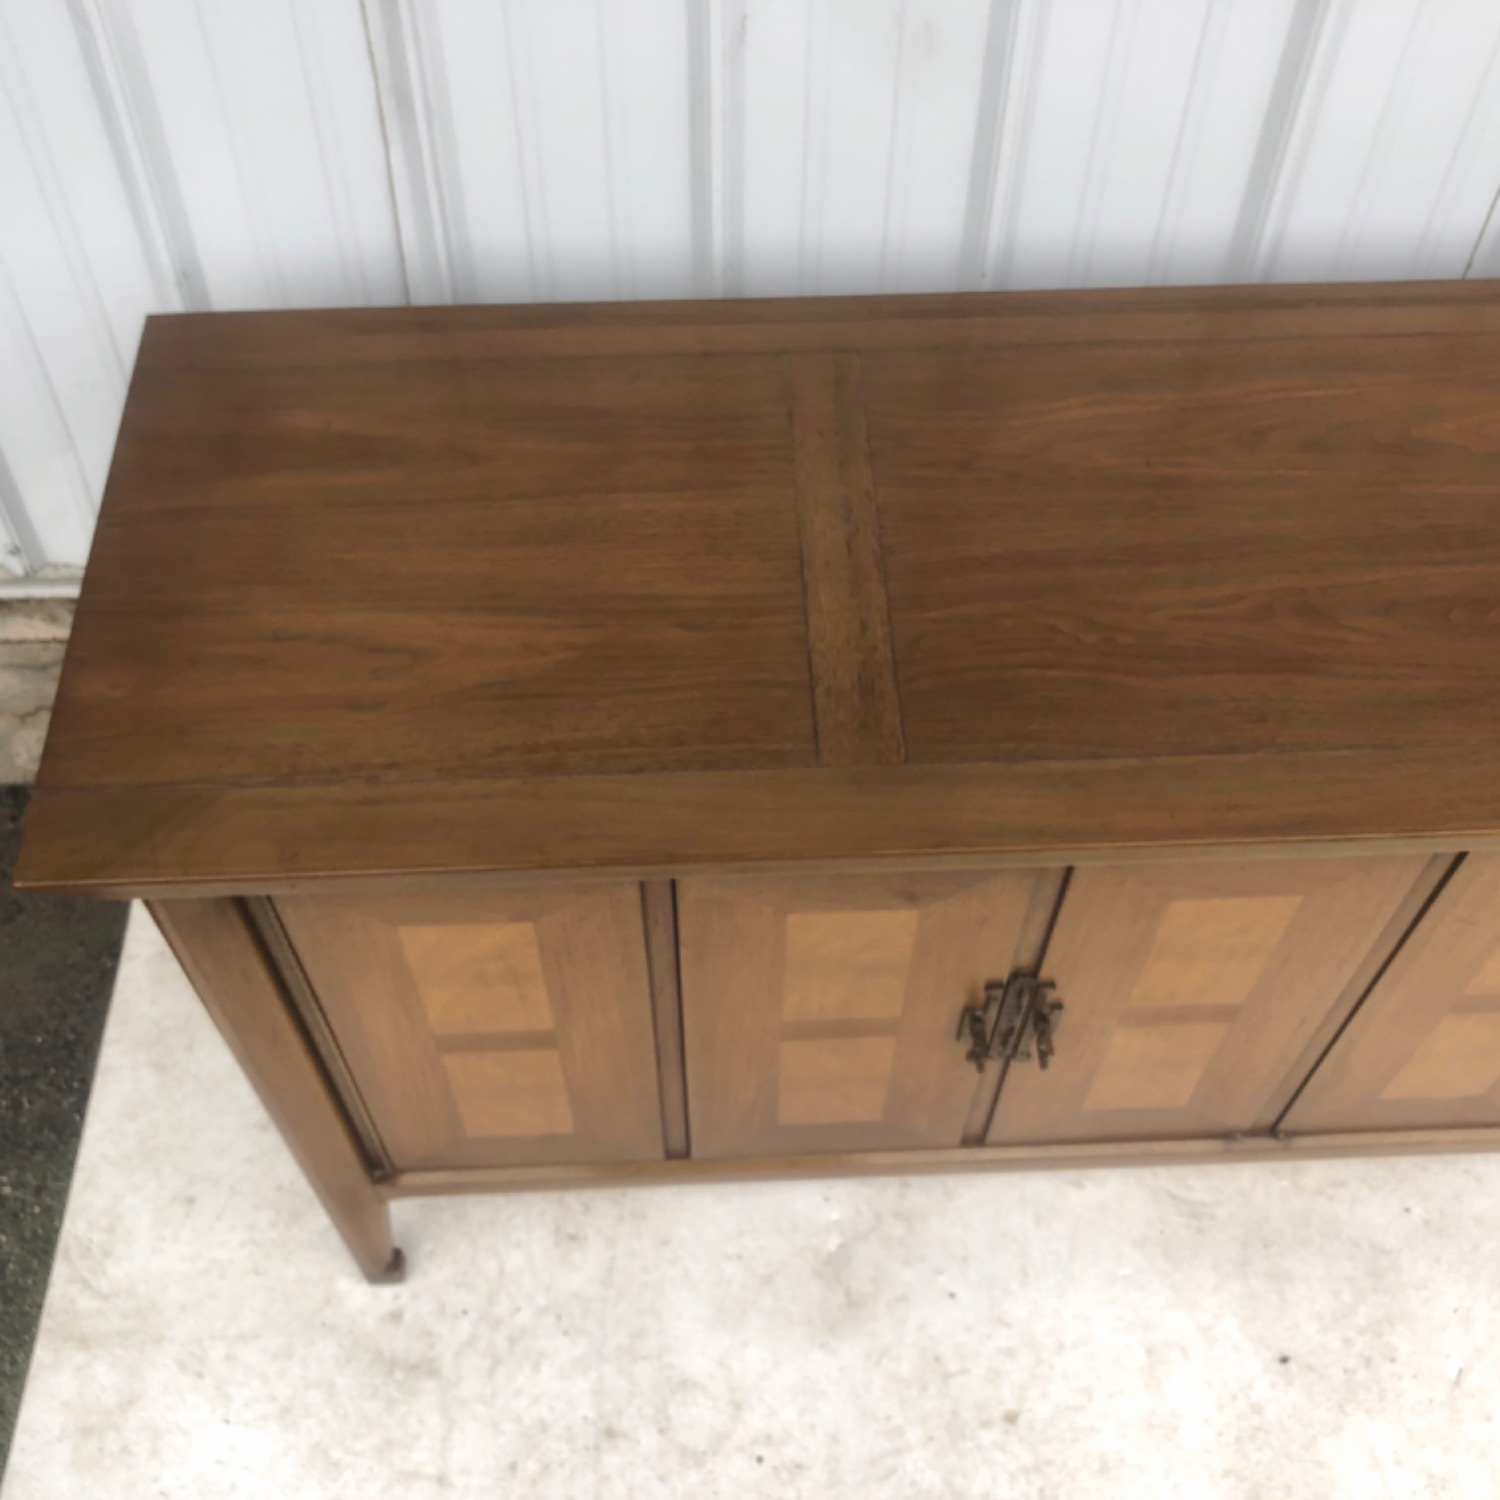 Mid-Century Bedroom Dresser by White Furniture - image-6